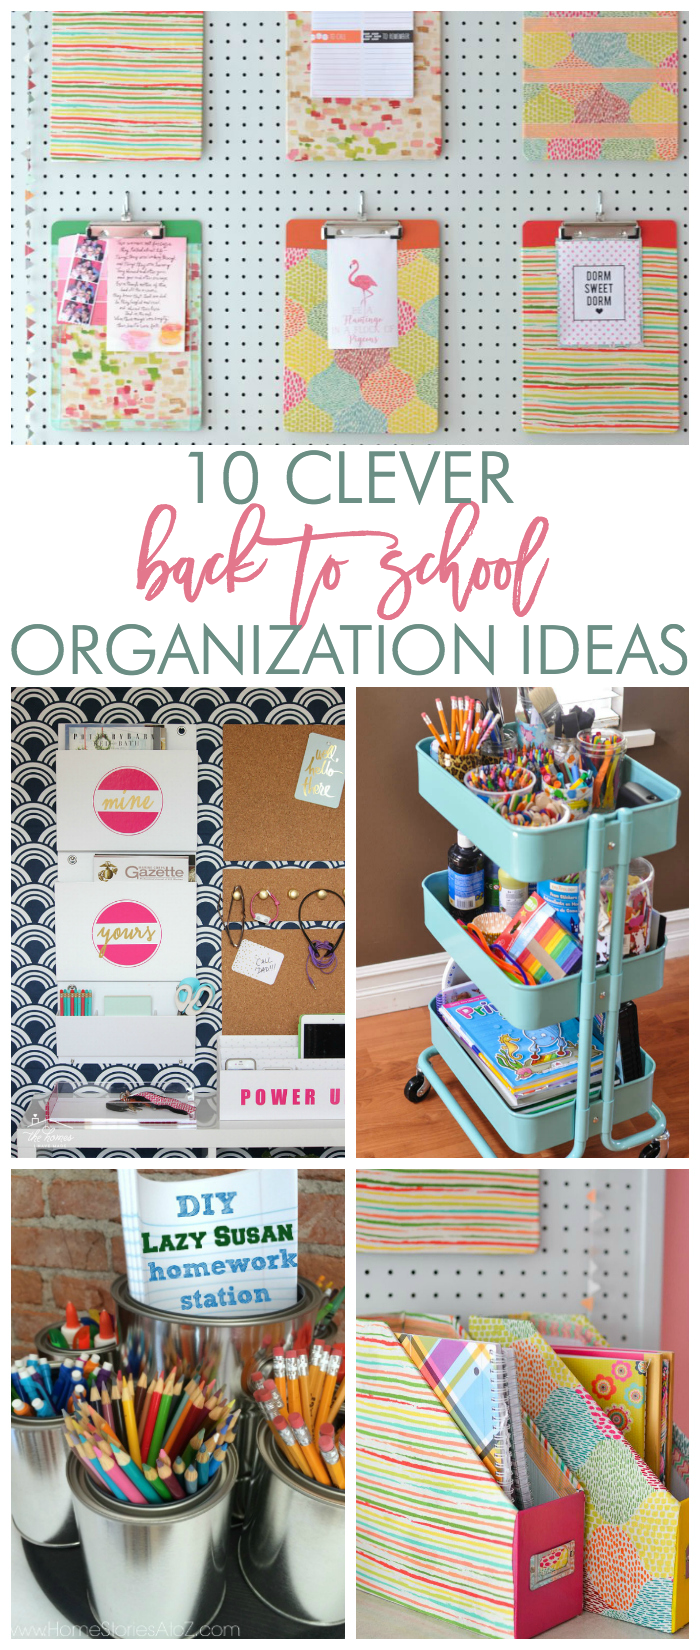 New 10 Great Ideas for Homework Stations and Back to School Organization BC66